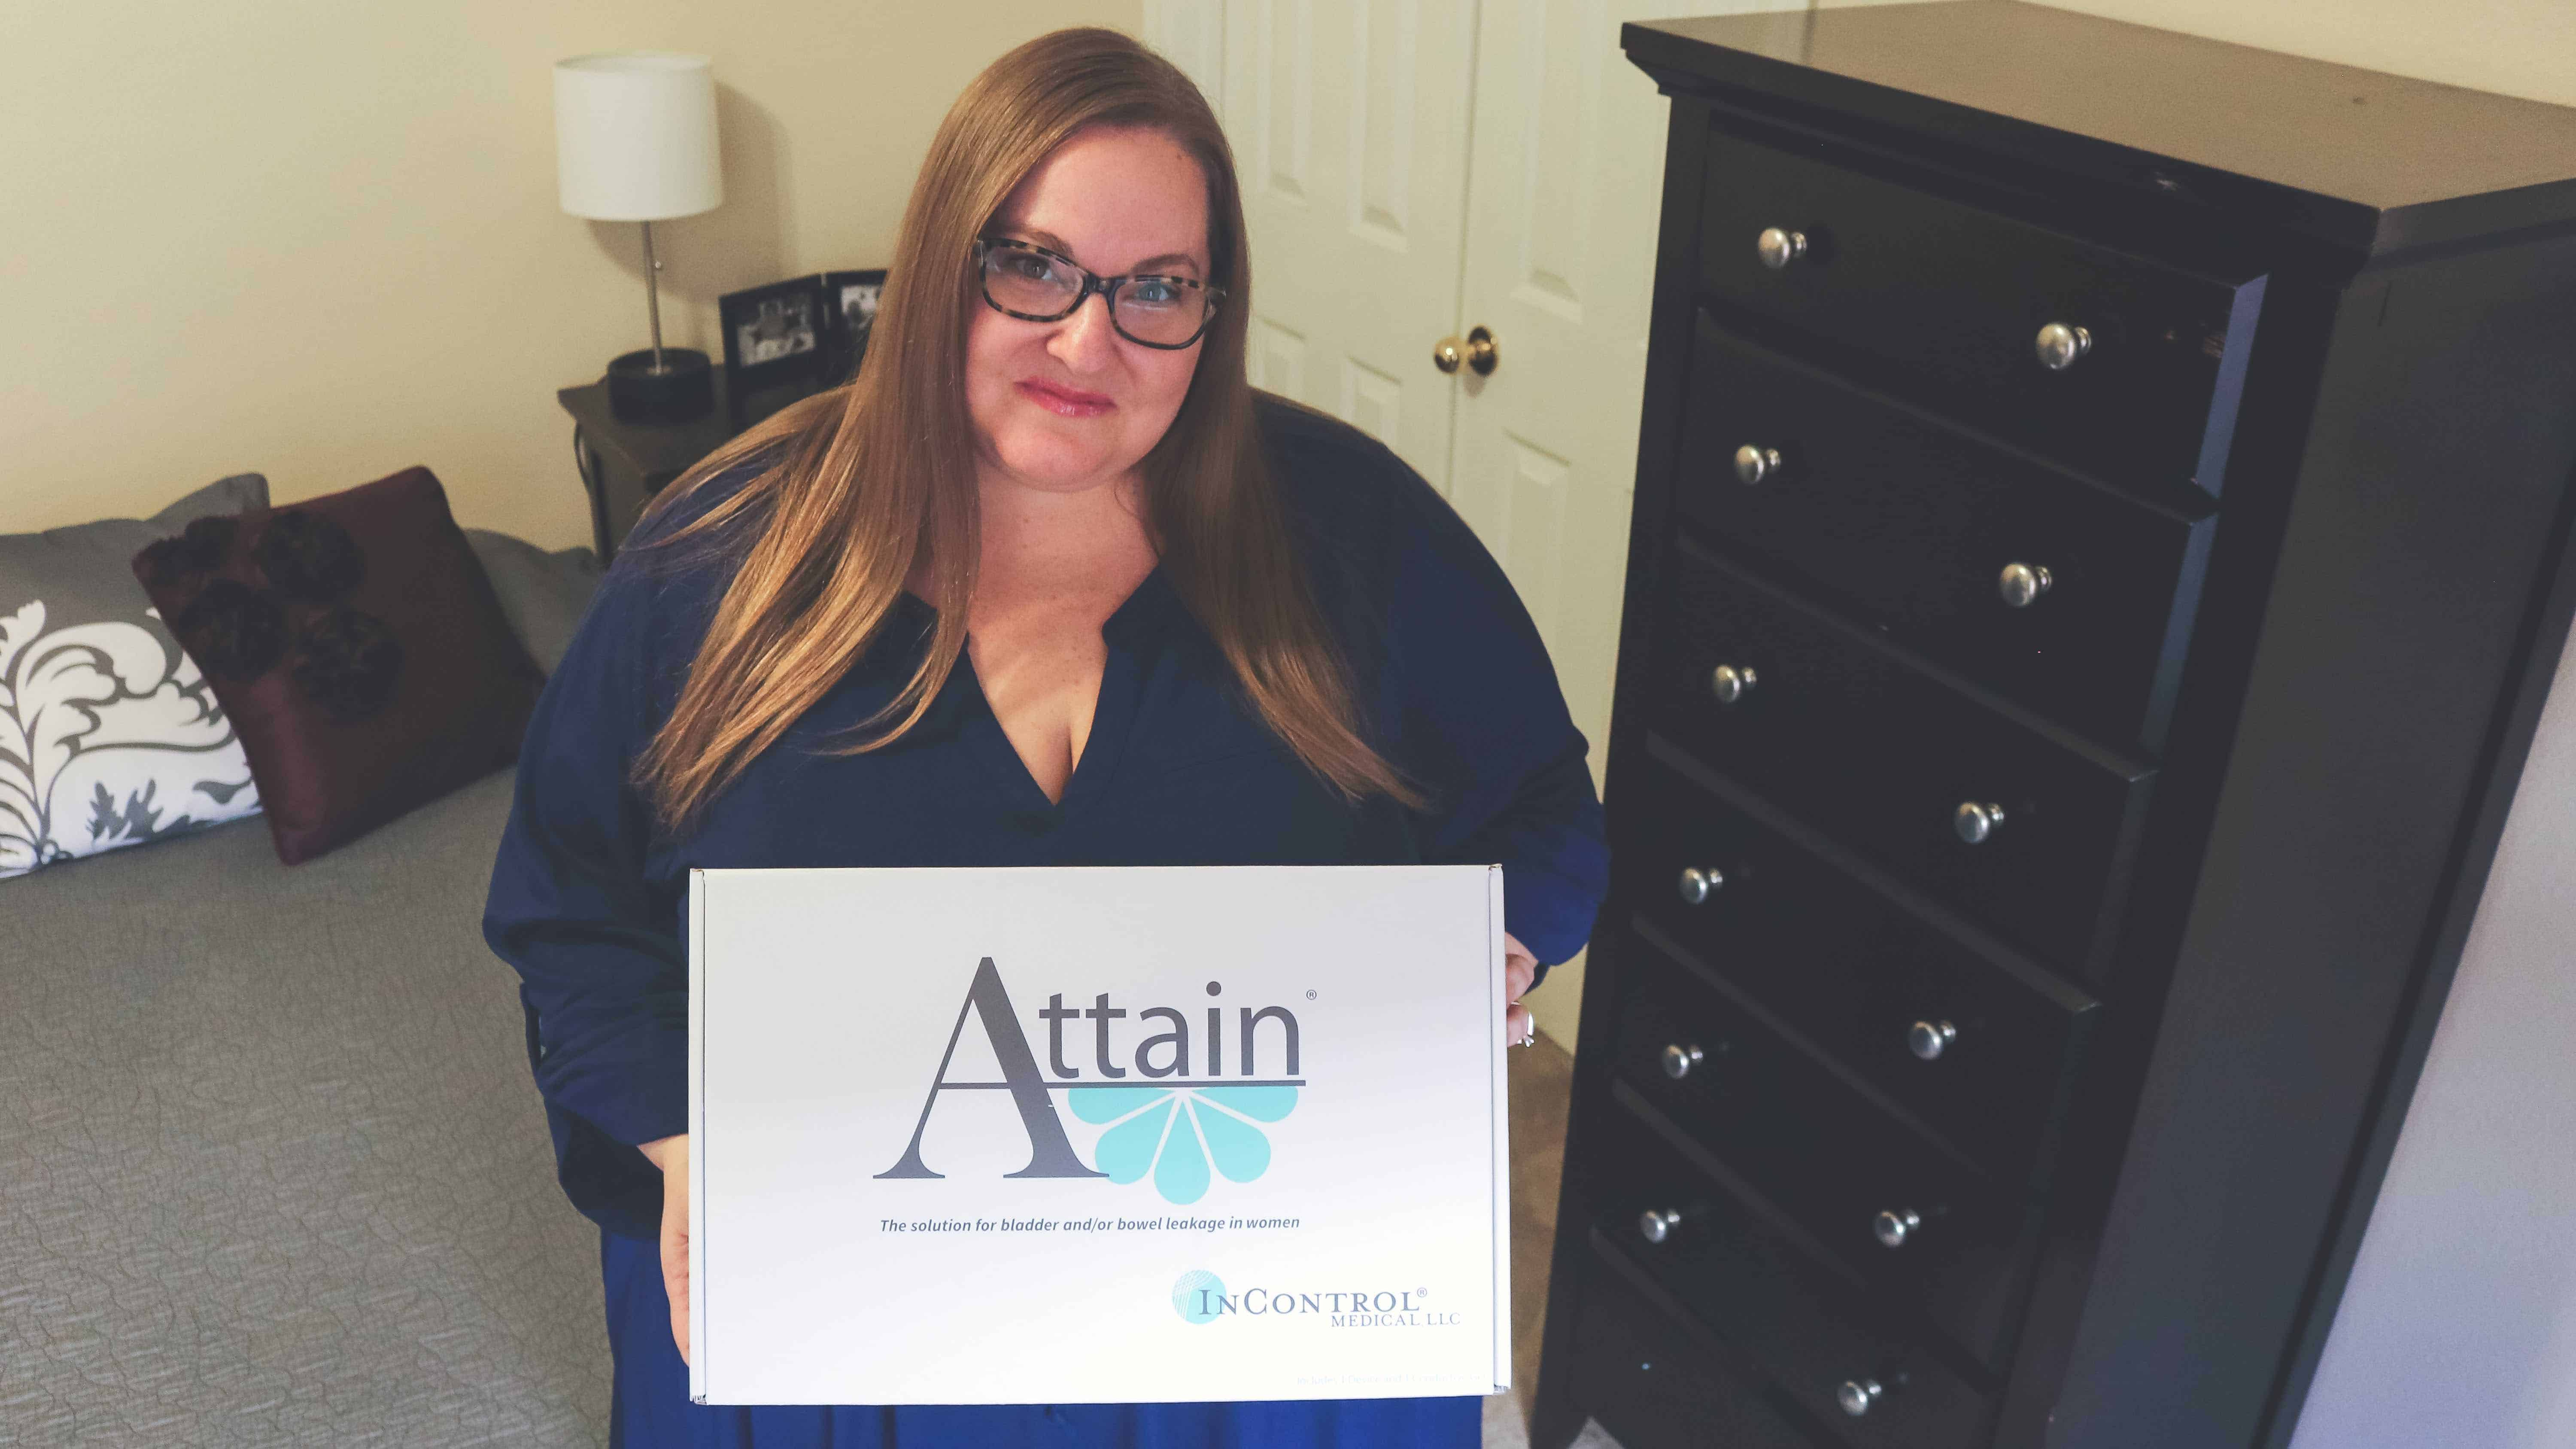 Attain product review